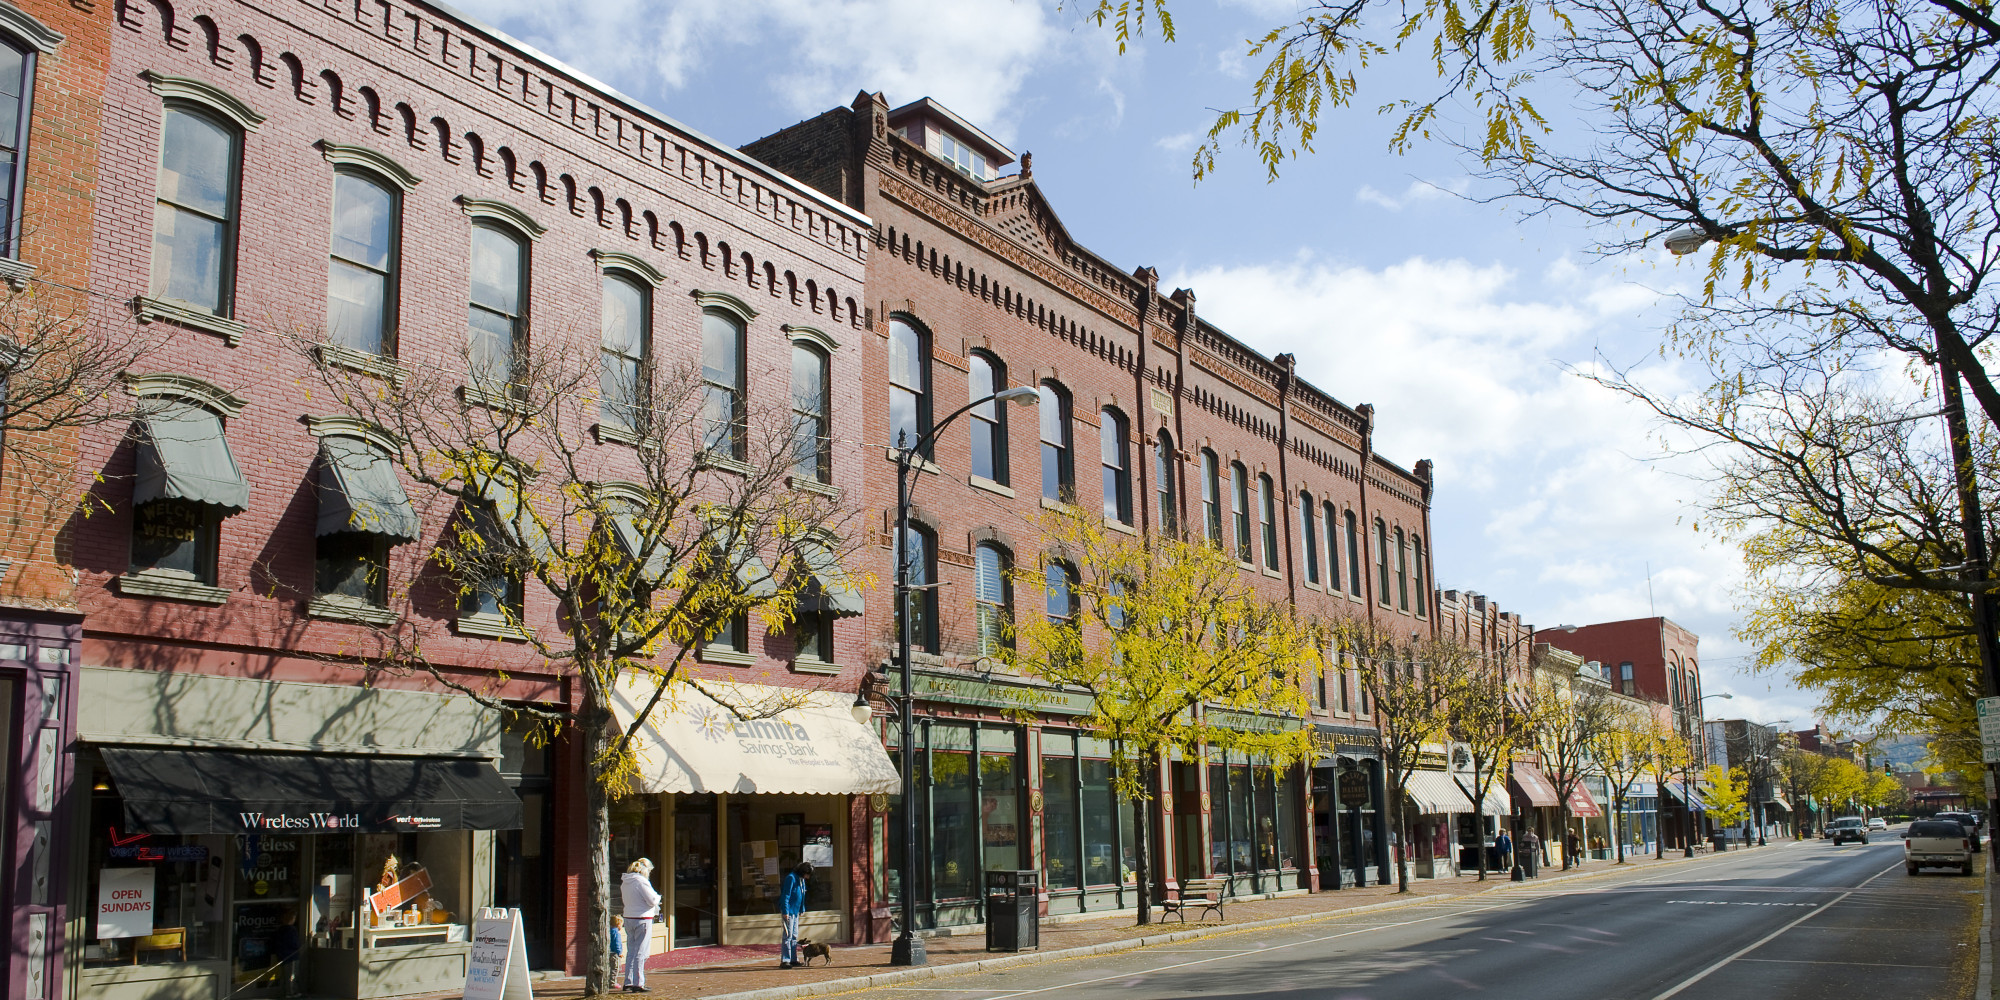 small towns and big cities Big cities and small towns have their apparent but differing pros and cons when it  comes to raising teenagers big cities traditionally contain.